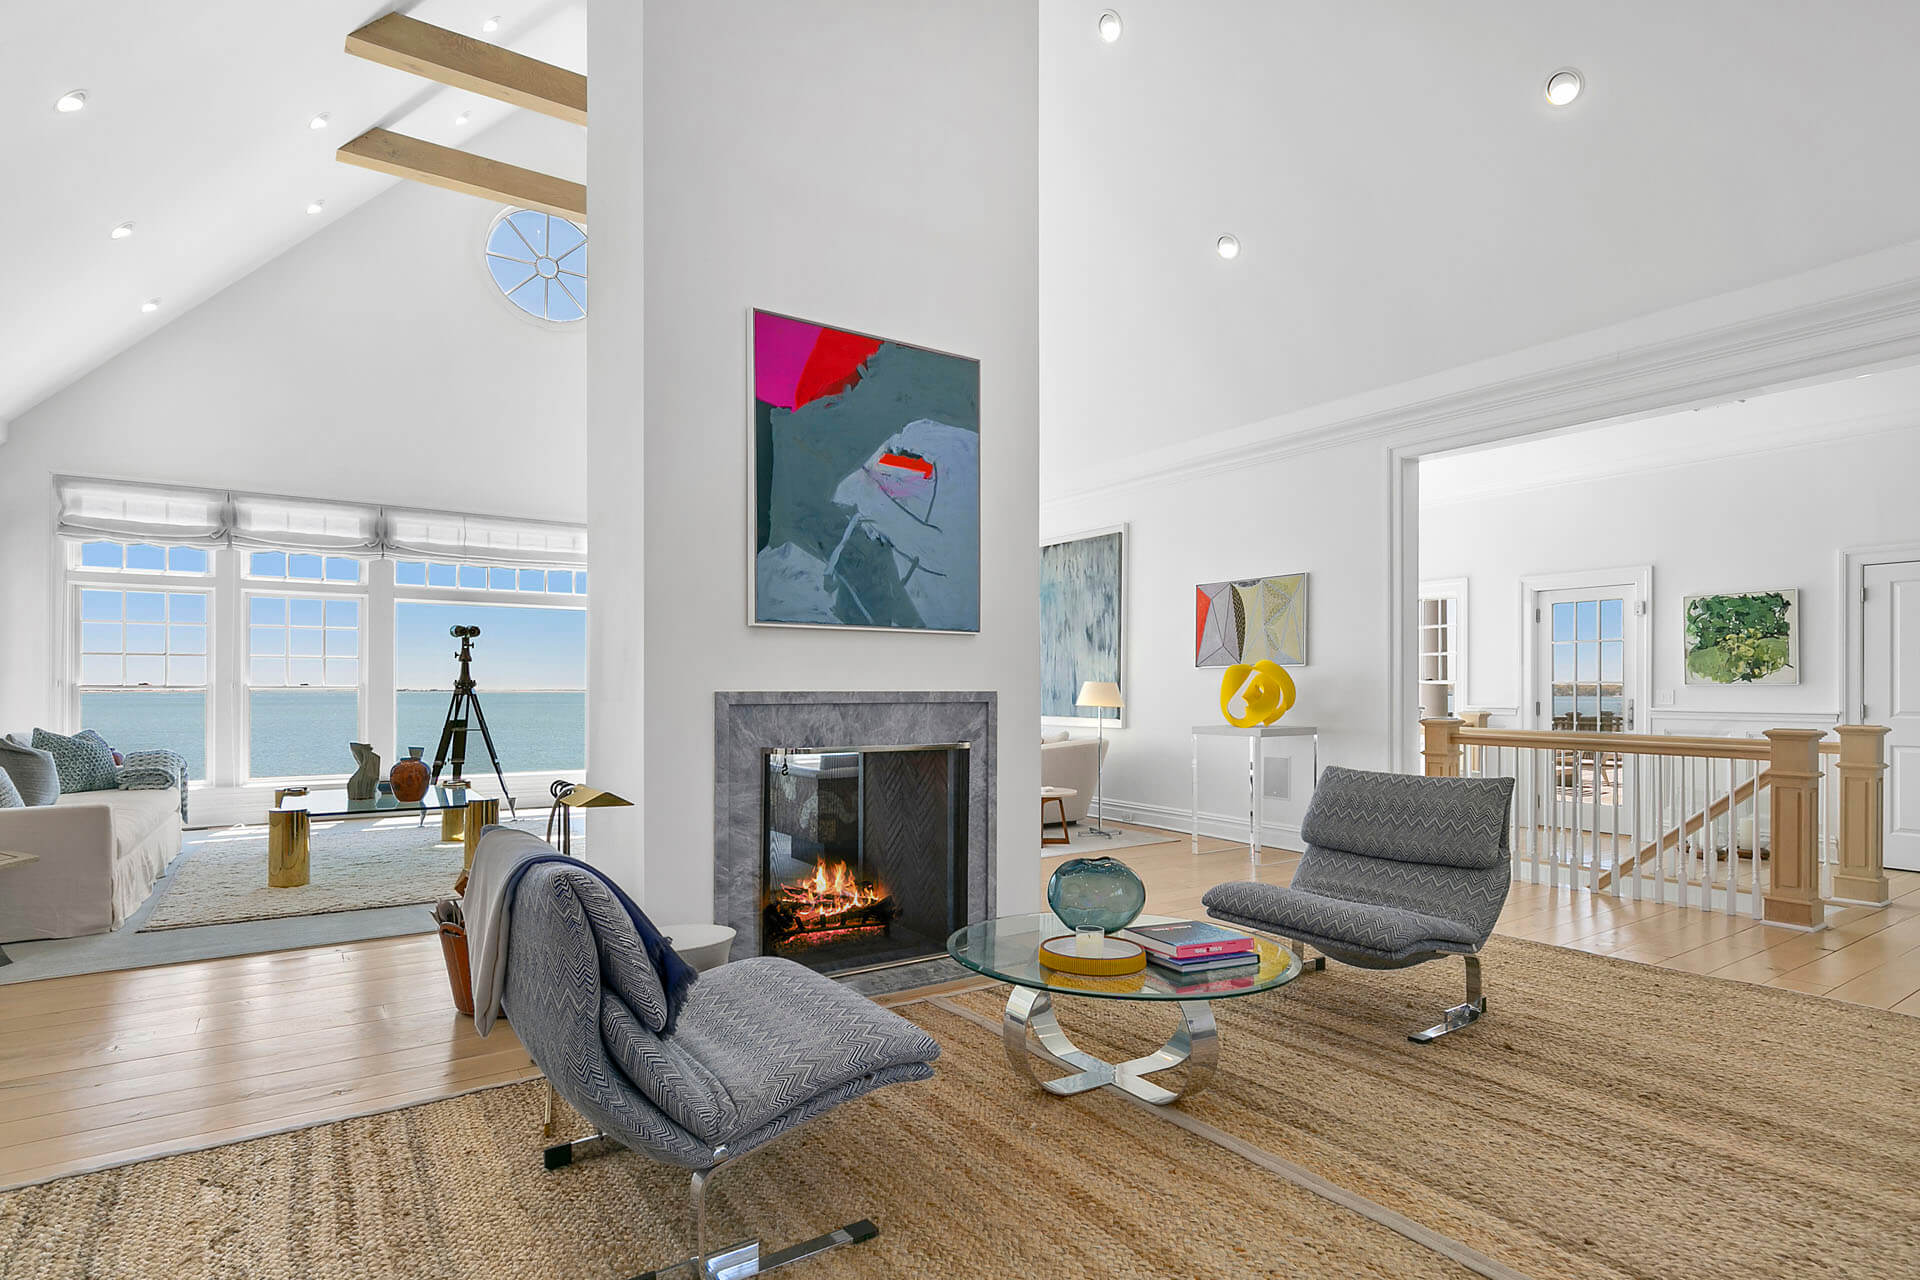 Seating area with a fireplace and ocean views